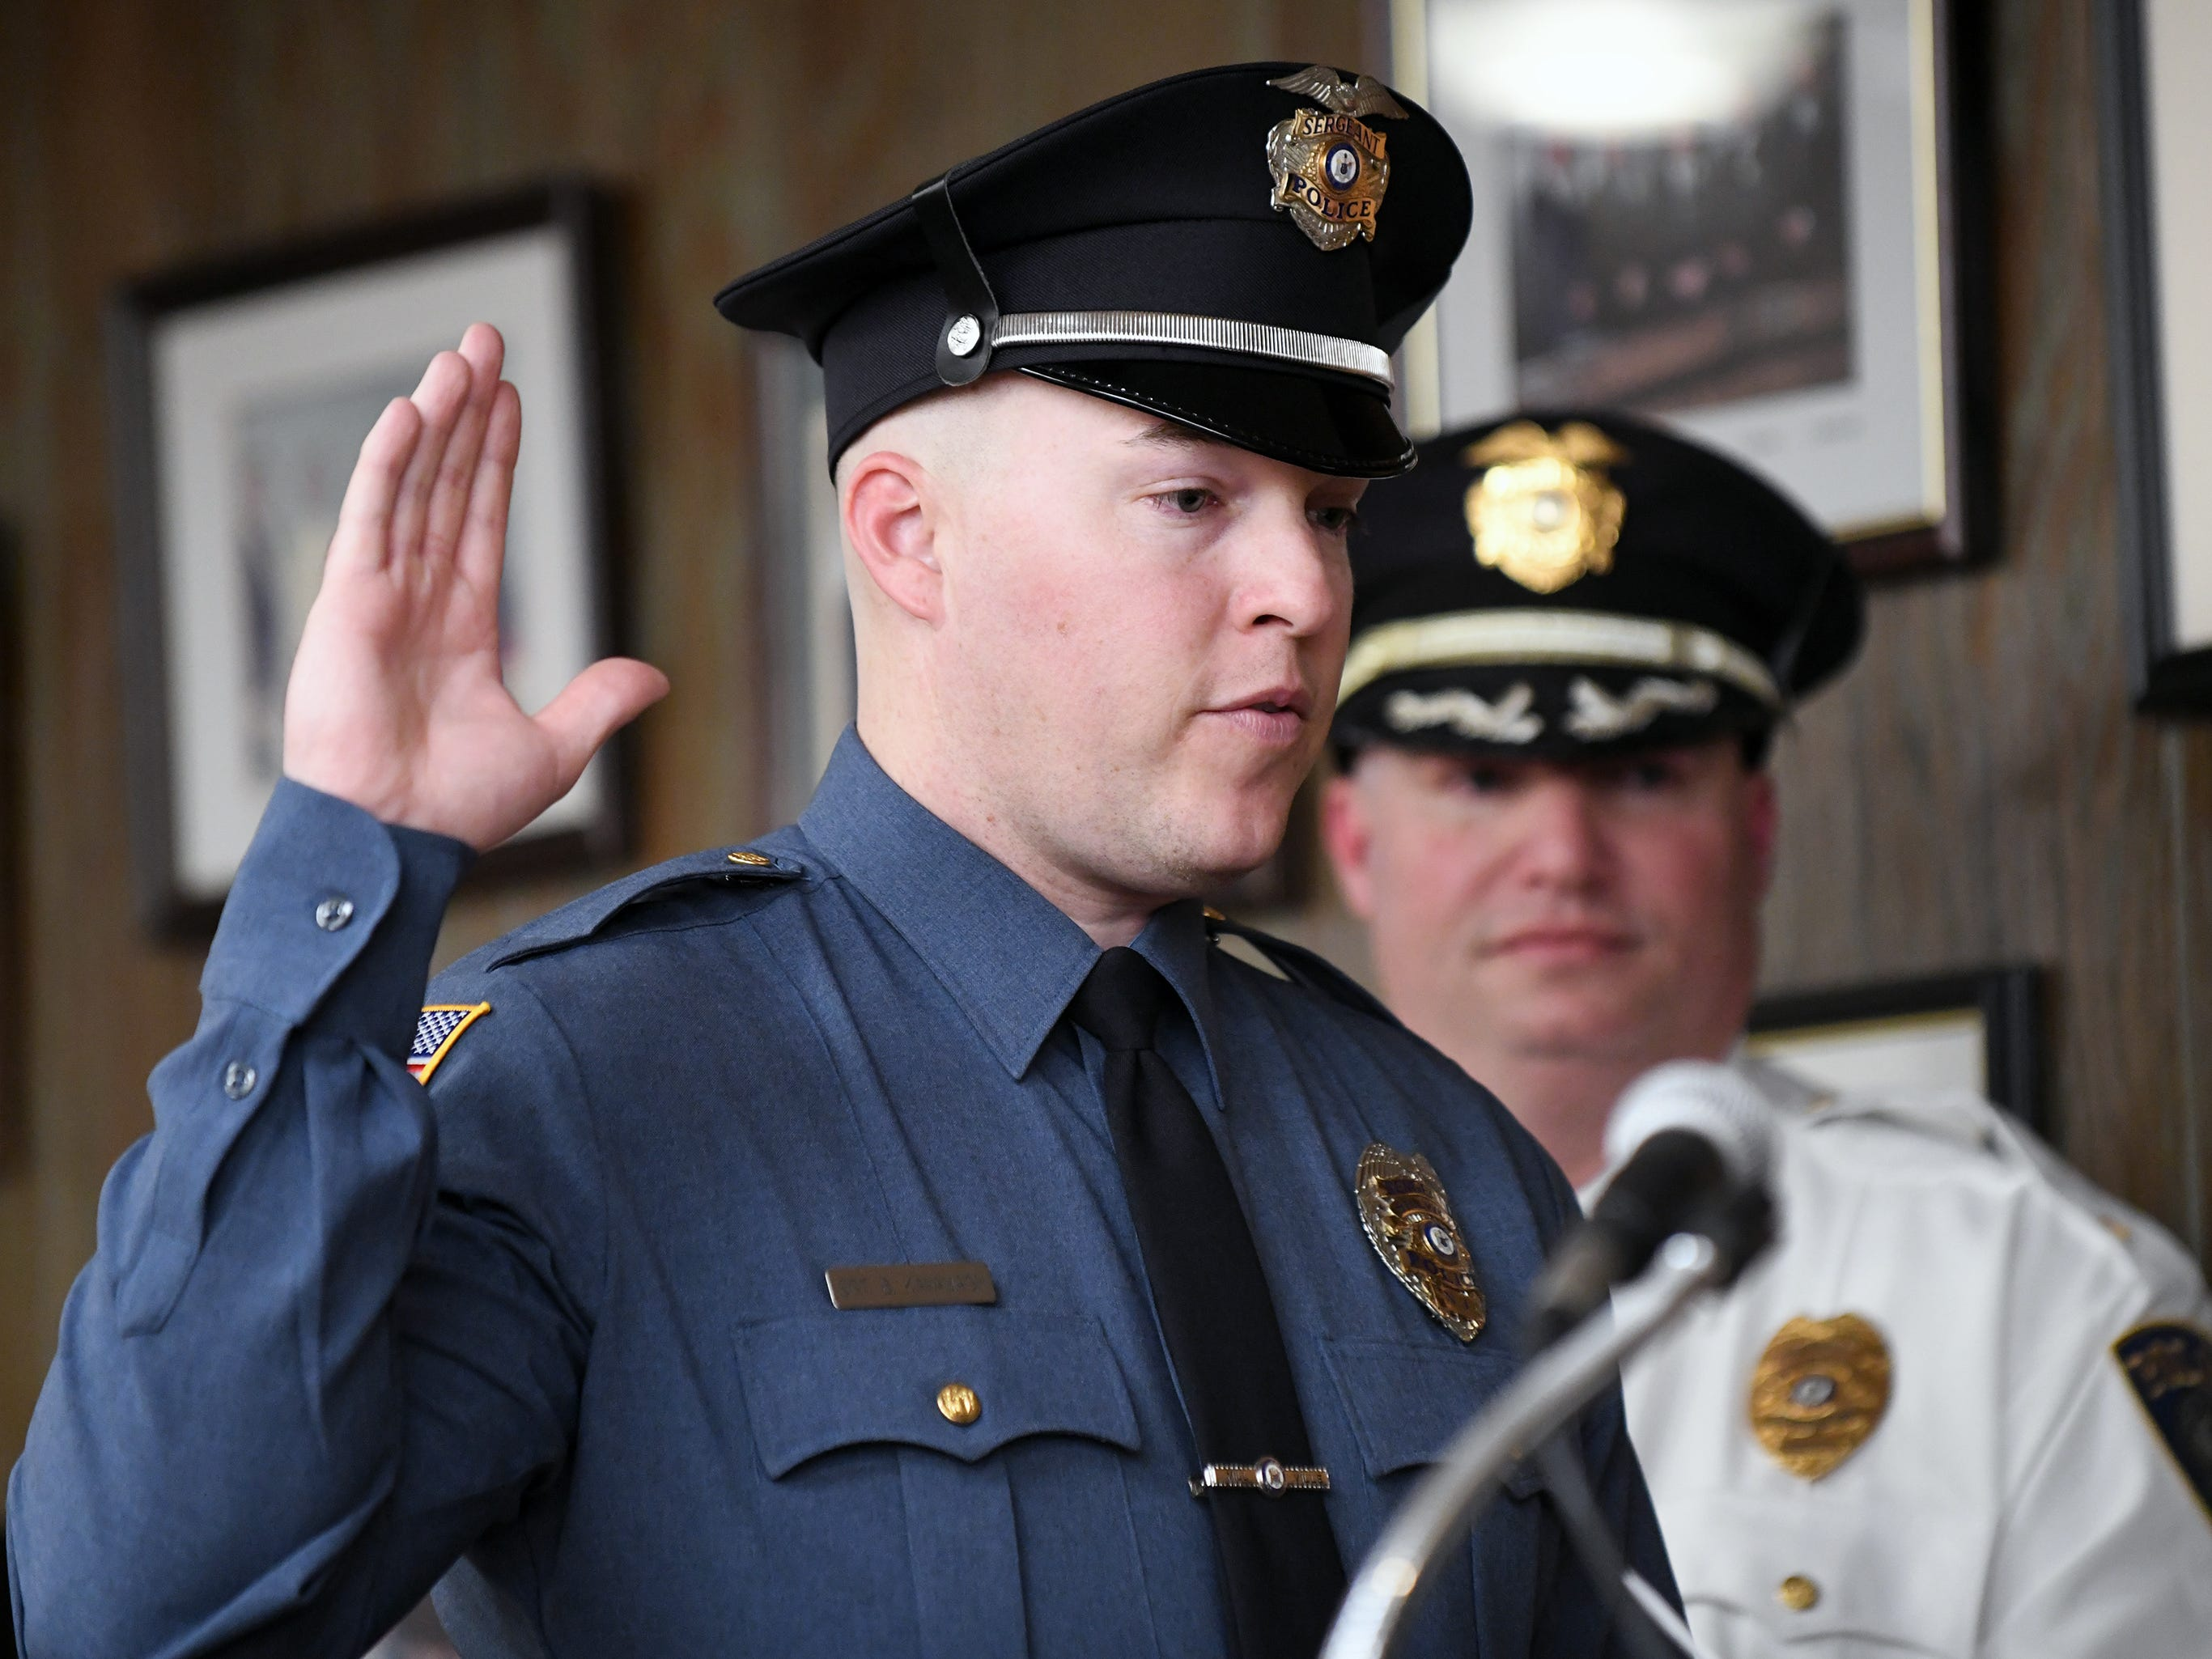 Millville Police Officer Brandon O. Kavanagh is promoted to Sgt. during Tuesday night's City Commission meeting.